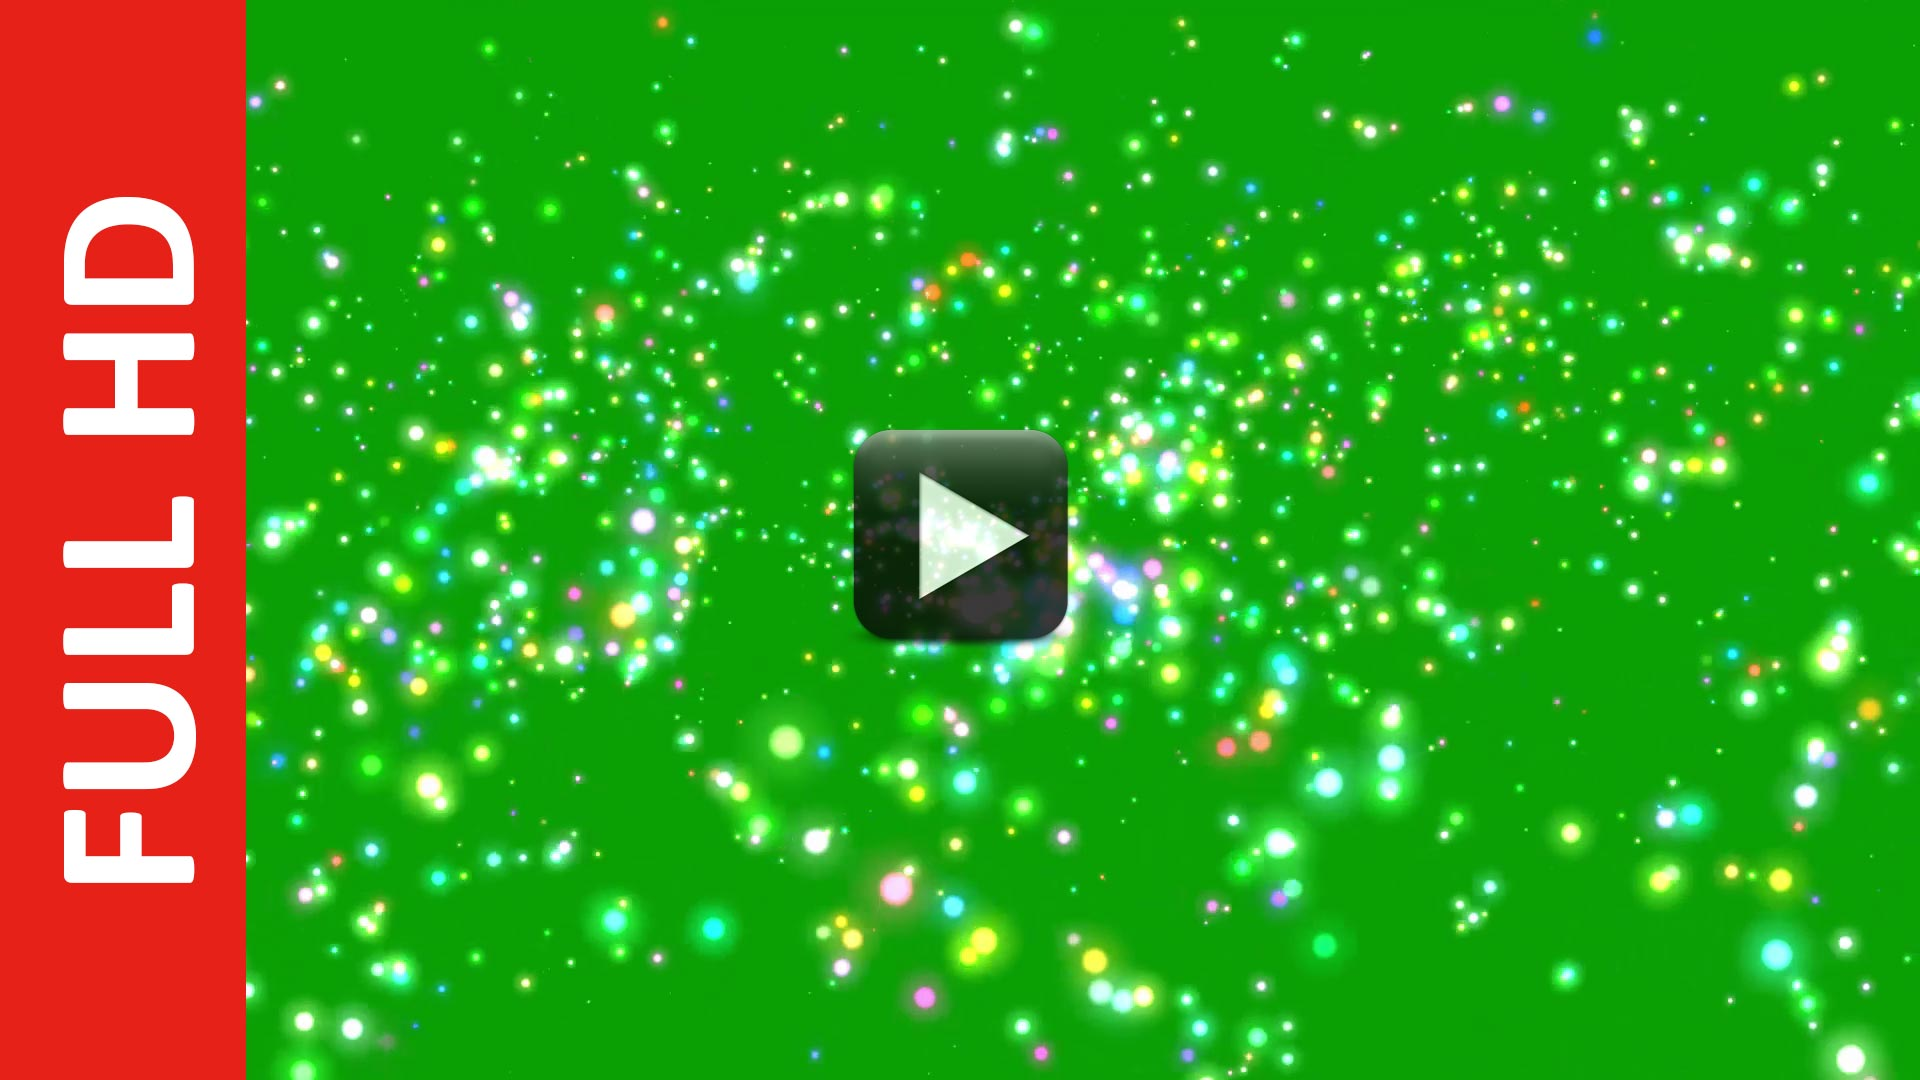 Particles Glitter Stars in the Universe Green Screen Background